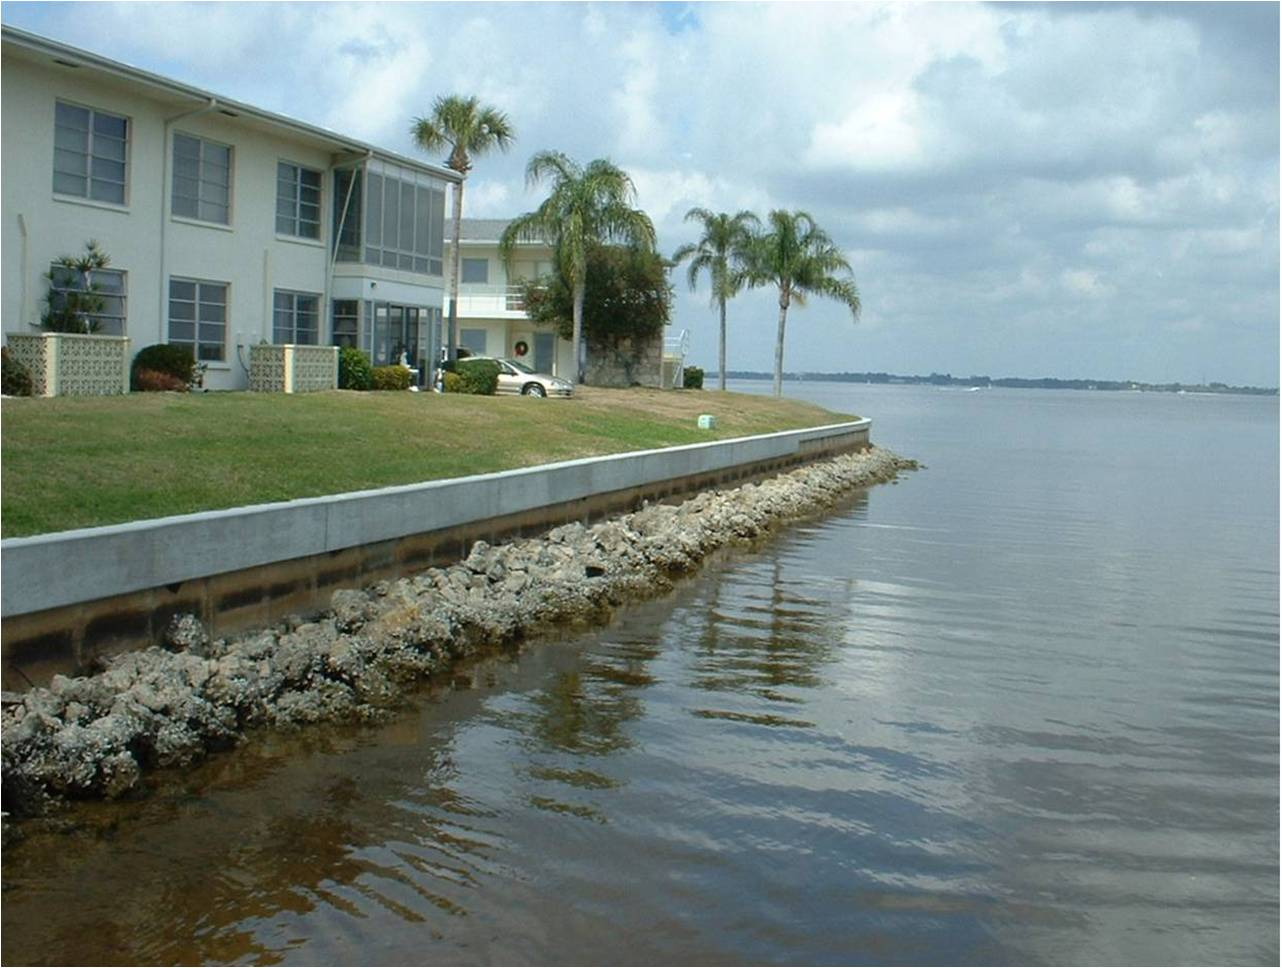 Image of Seawall, Condos along water.